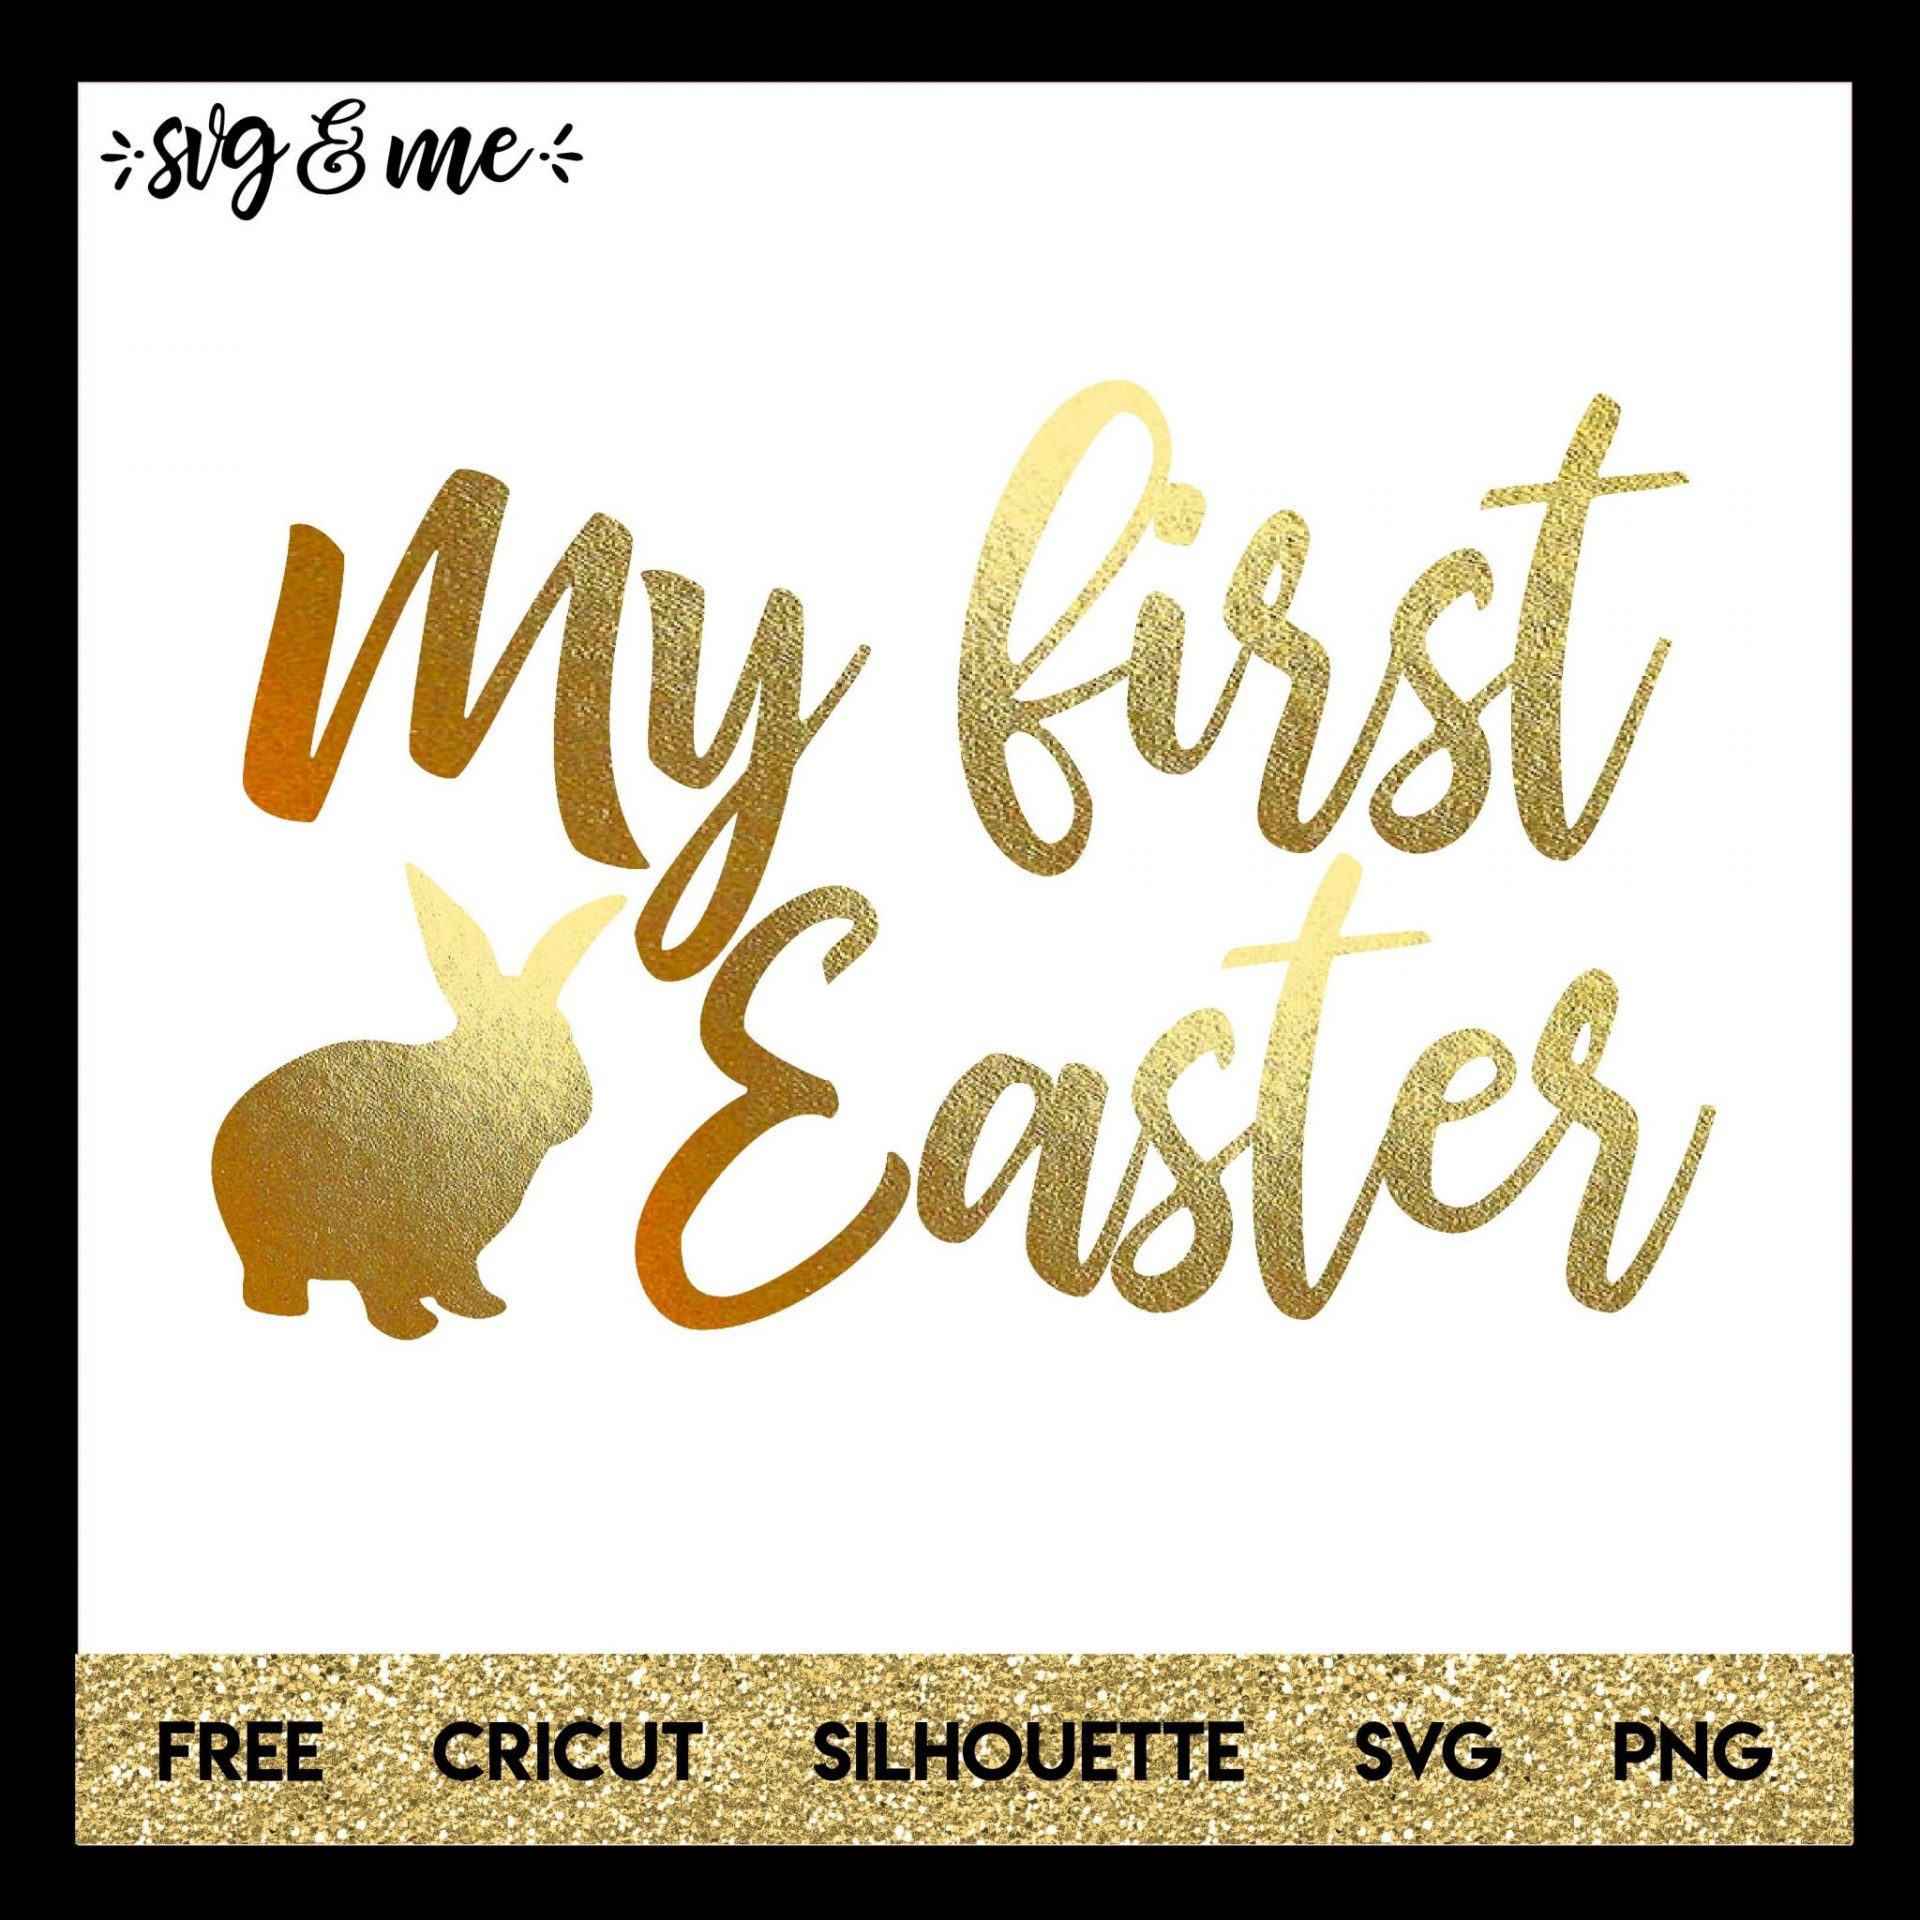 FREE SVG CUT FILE for Cricut, Silhouette and more - My First Easter